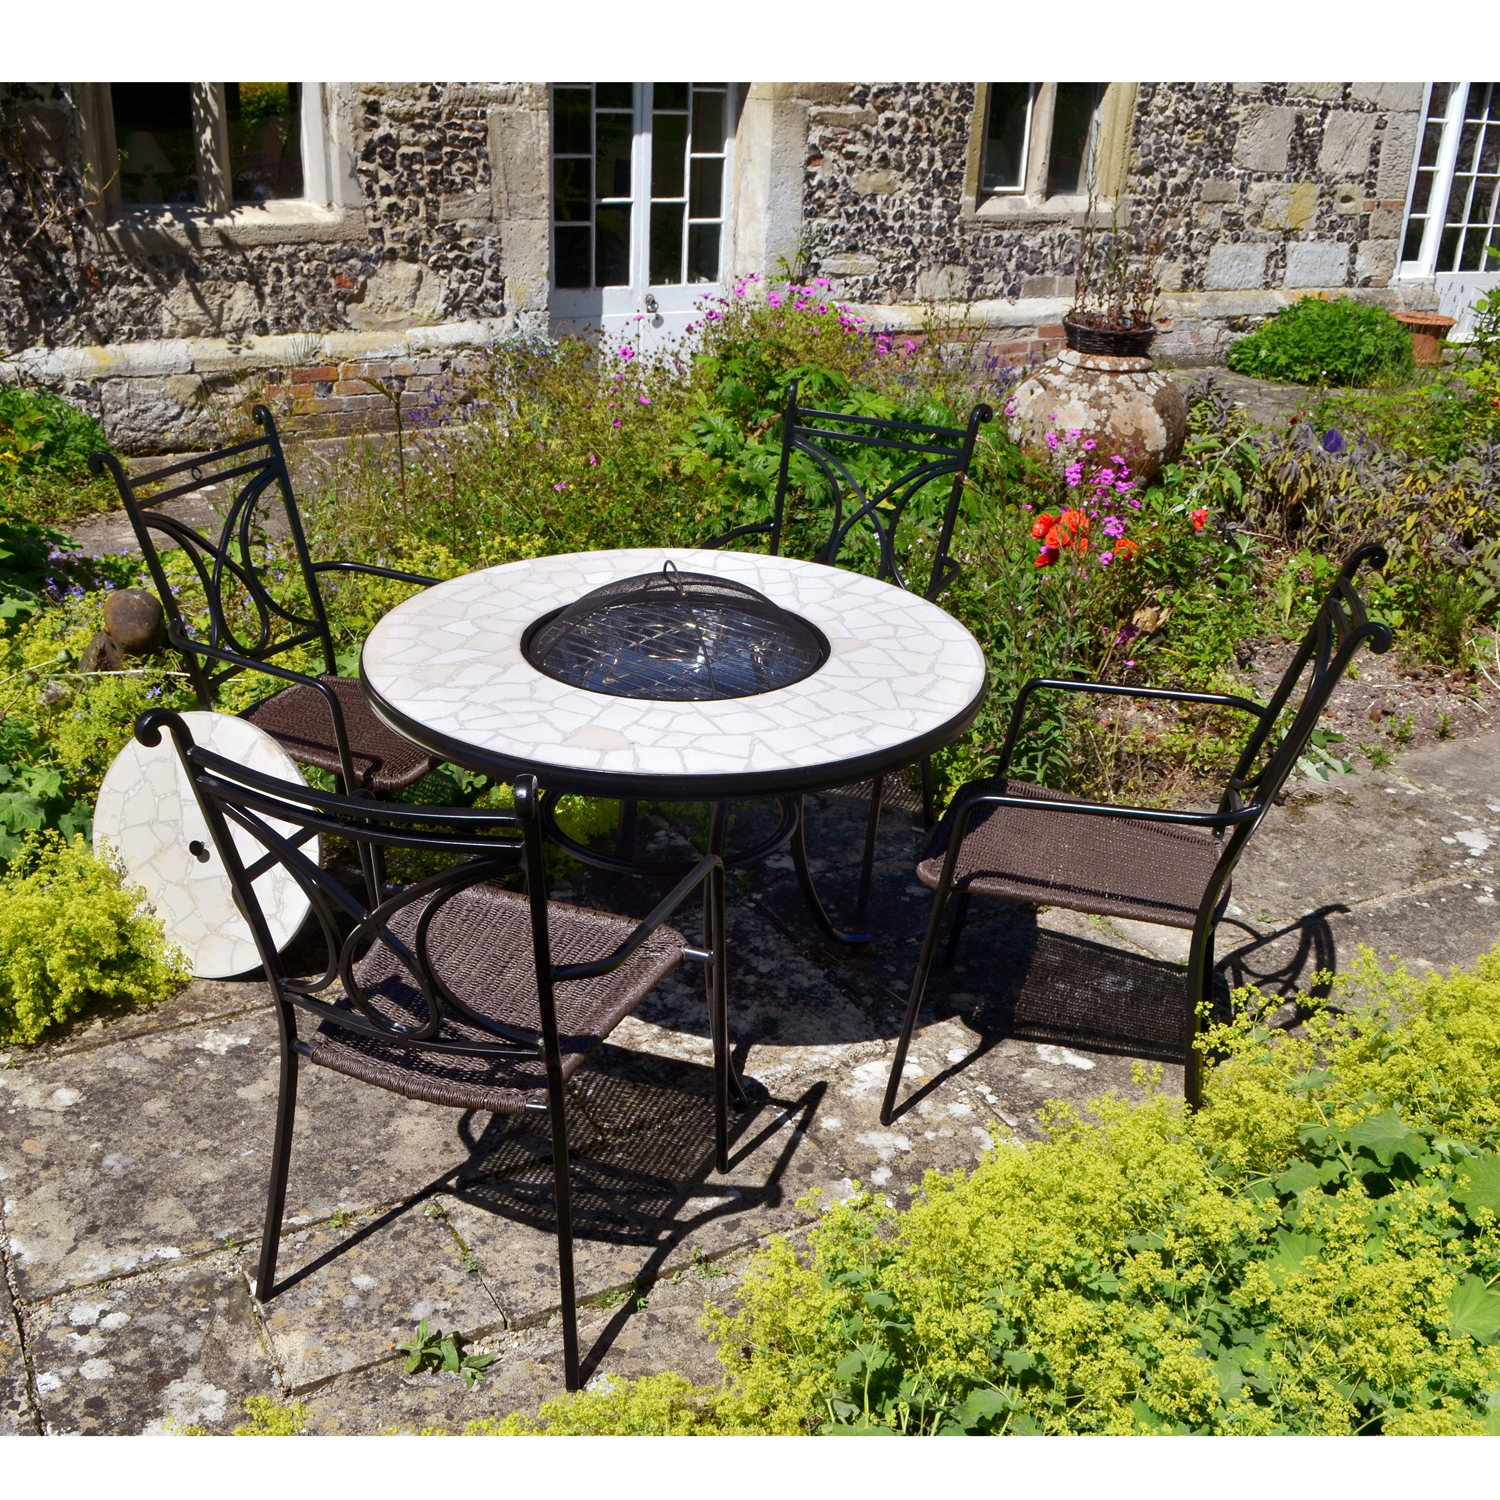 Tudela Tall firepit with Treviso chairs